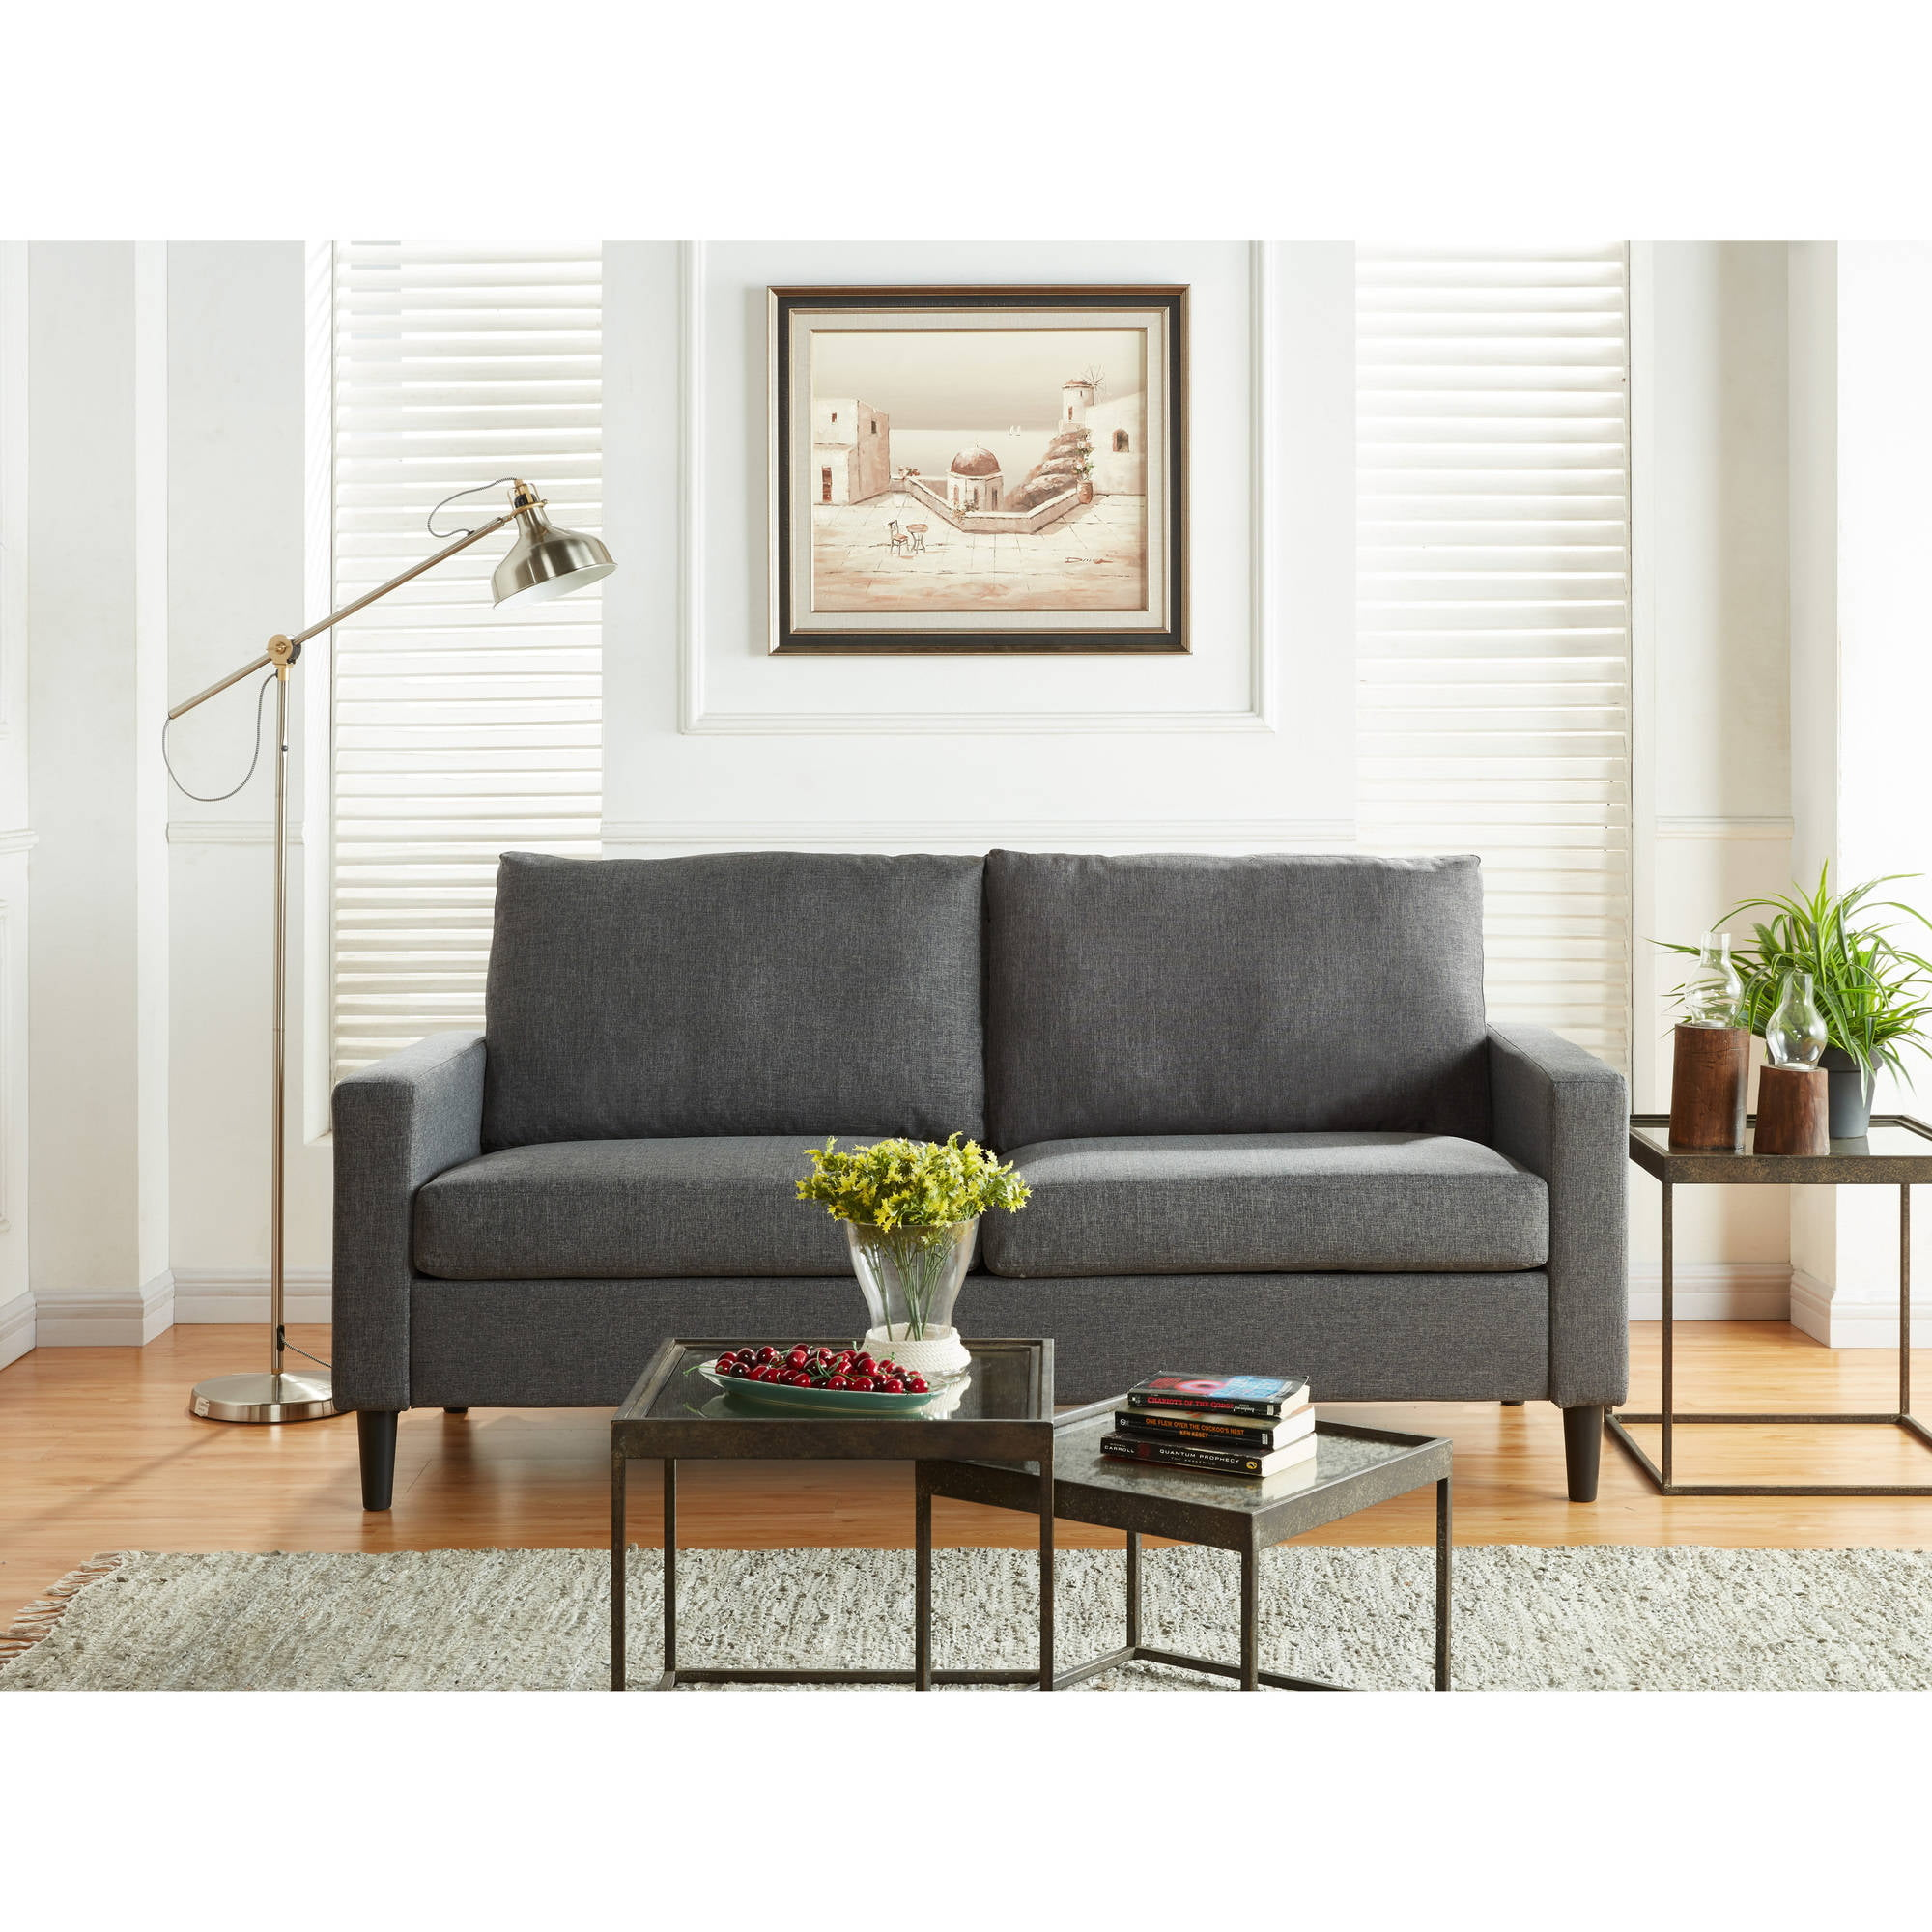 Mainstays Apartment Sofa, Multiple Colors - Walmart.com